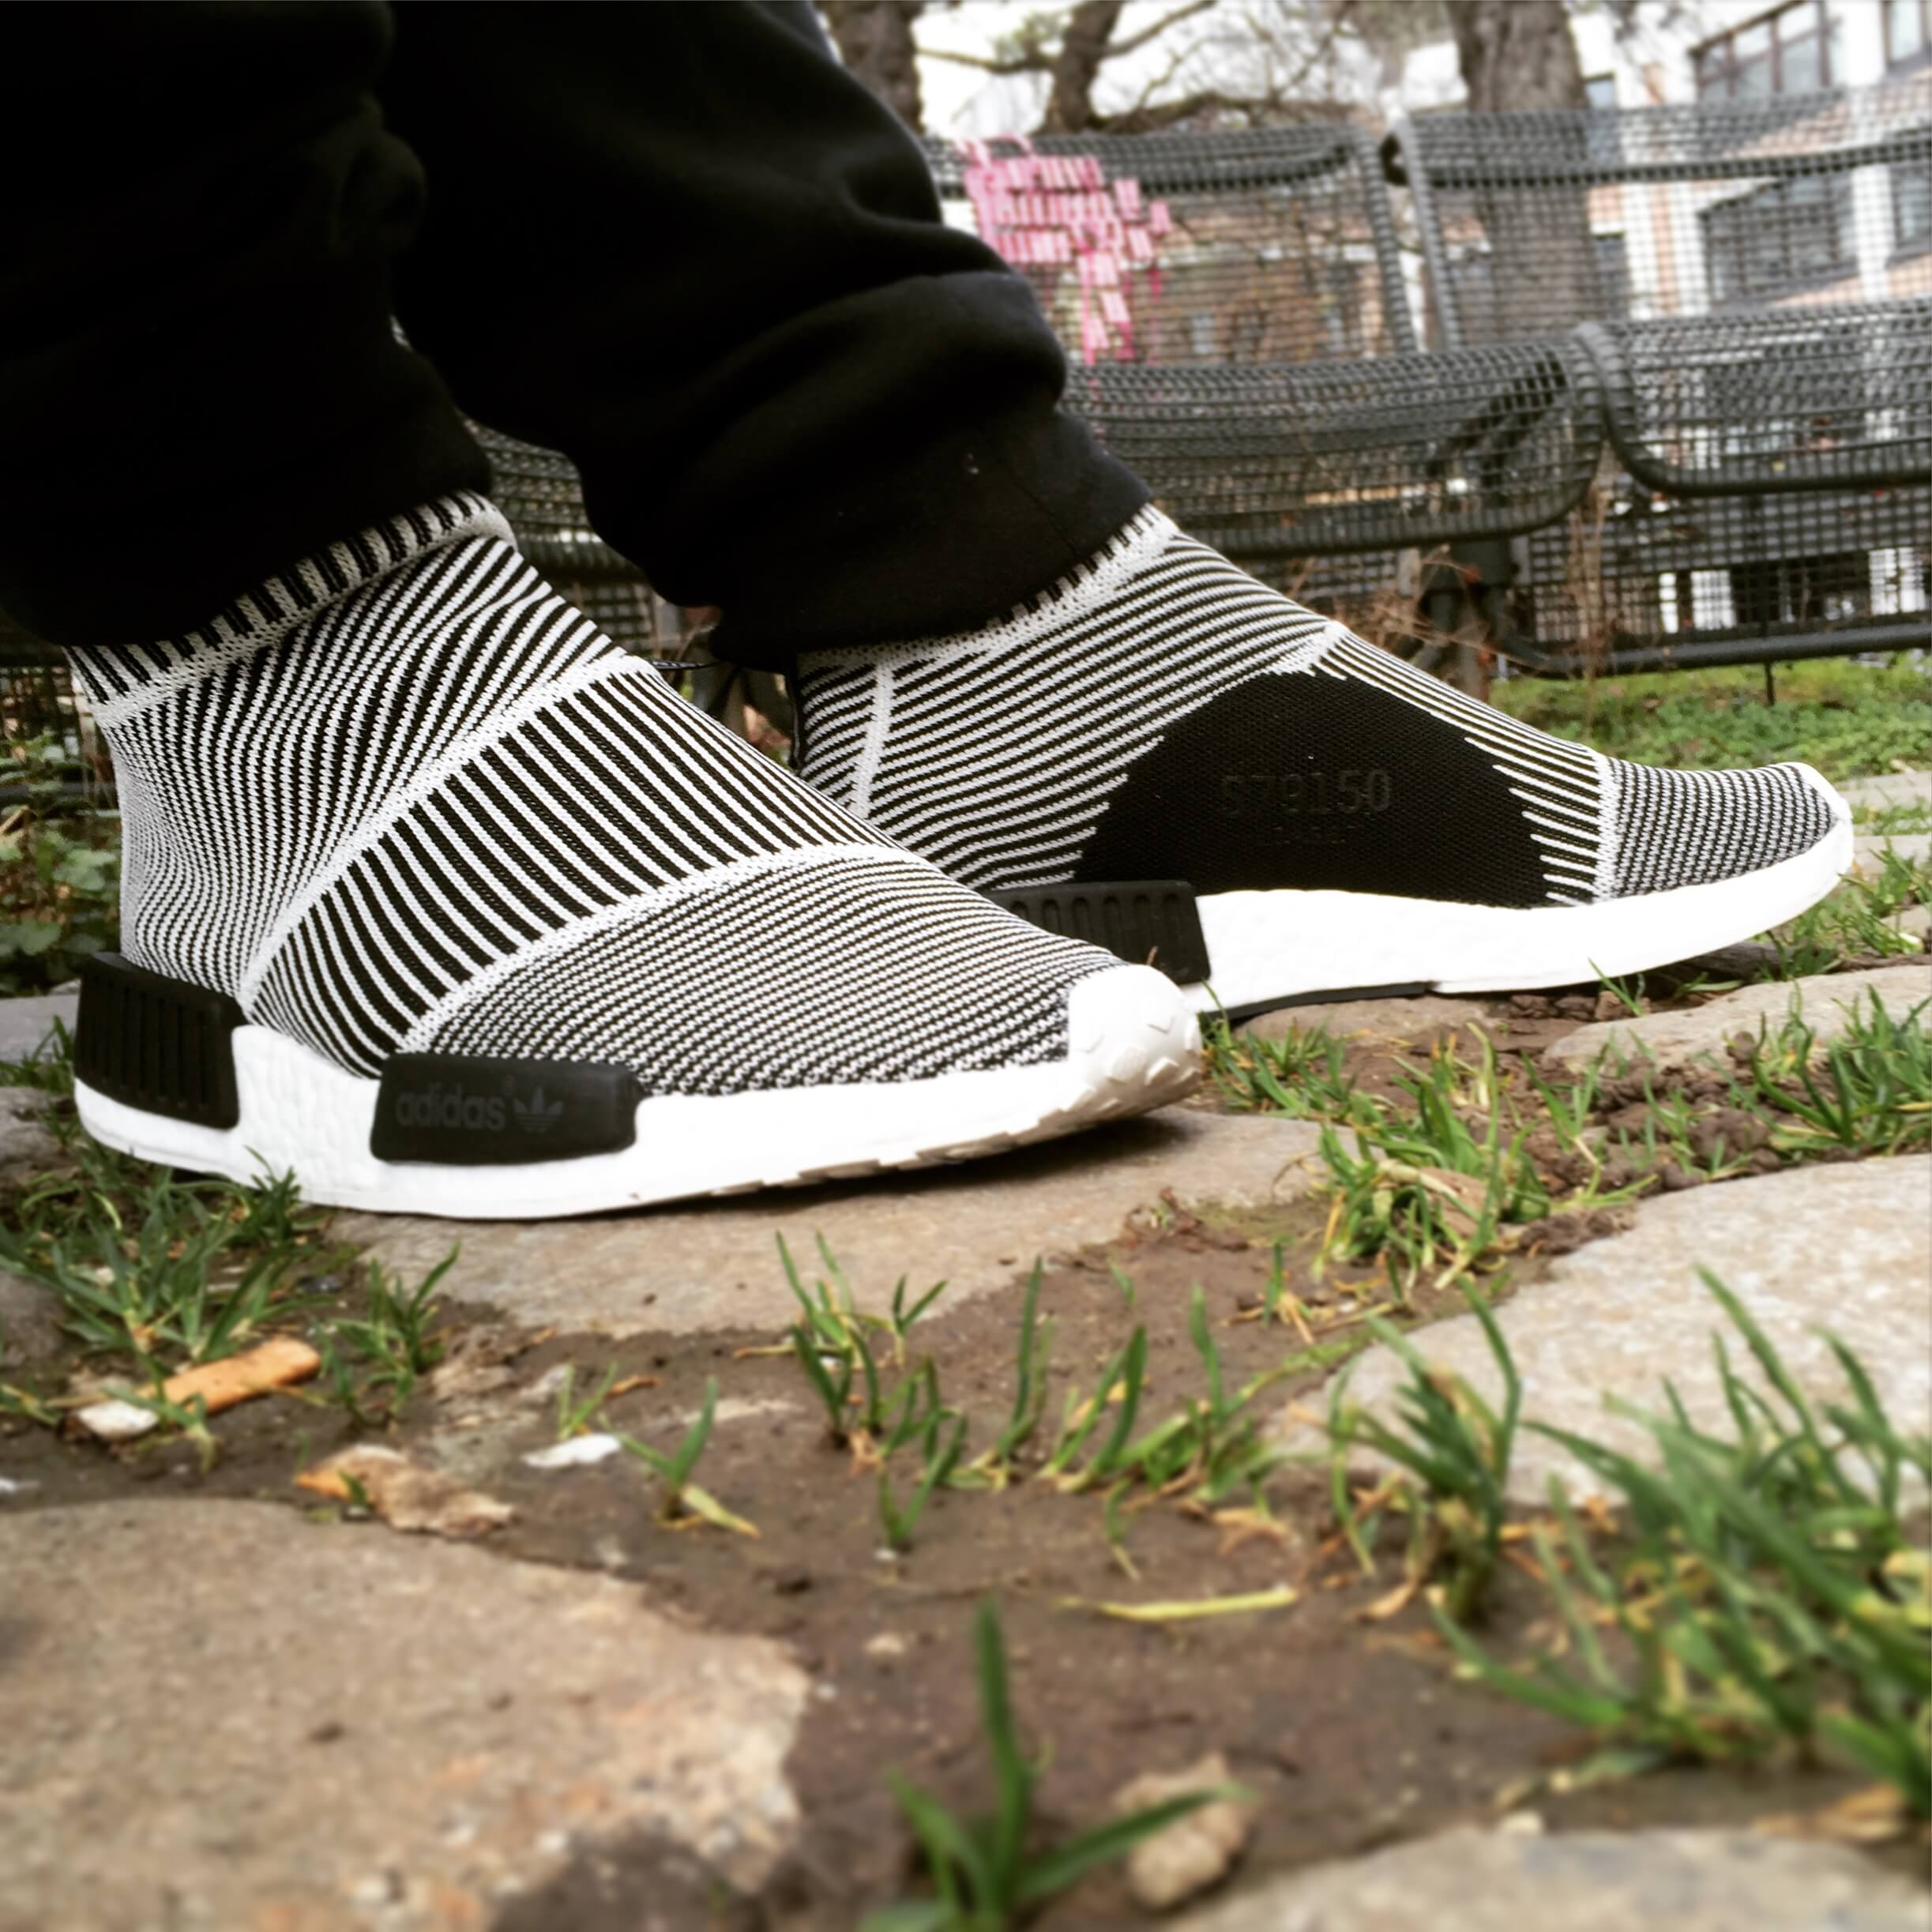 Adidas-NMD-City-Sock-Side-View_3-Onfeet